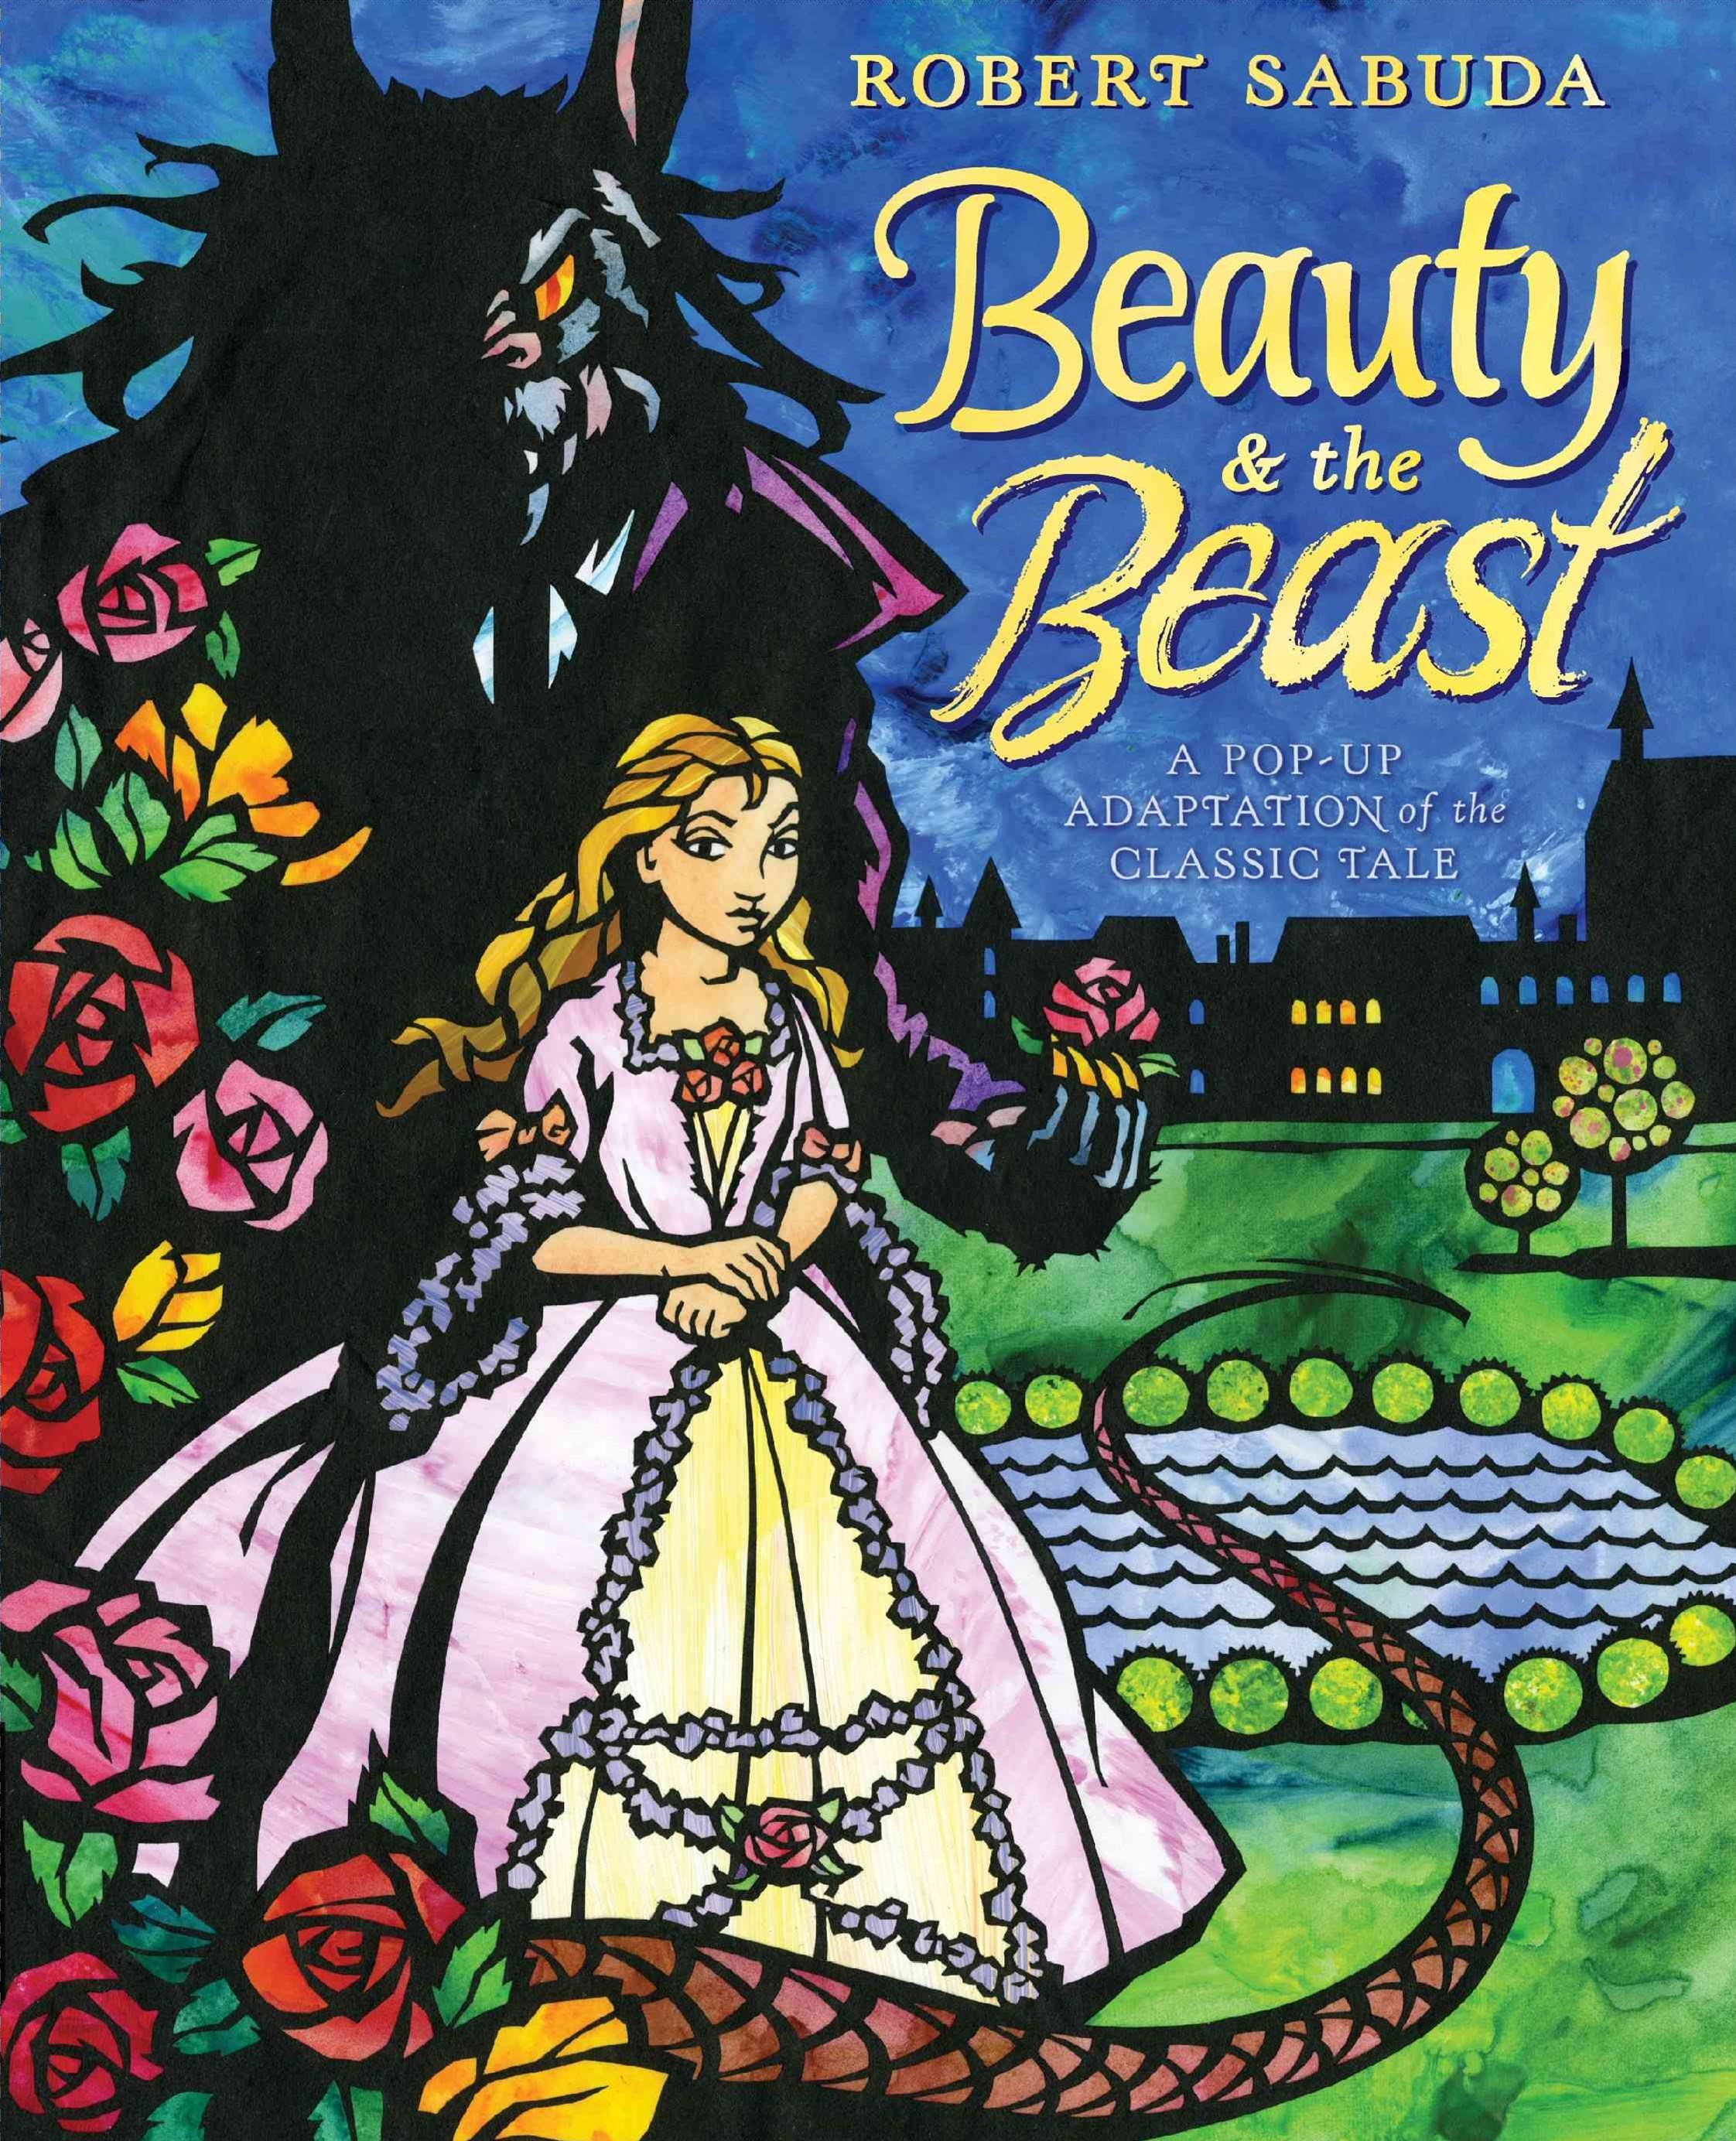 Beauty and the Beast: A Pop-Up Adaptation of the Classic Fairy Tale